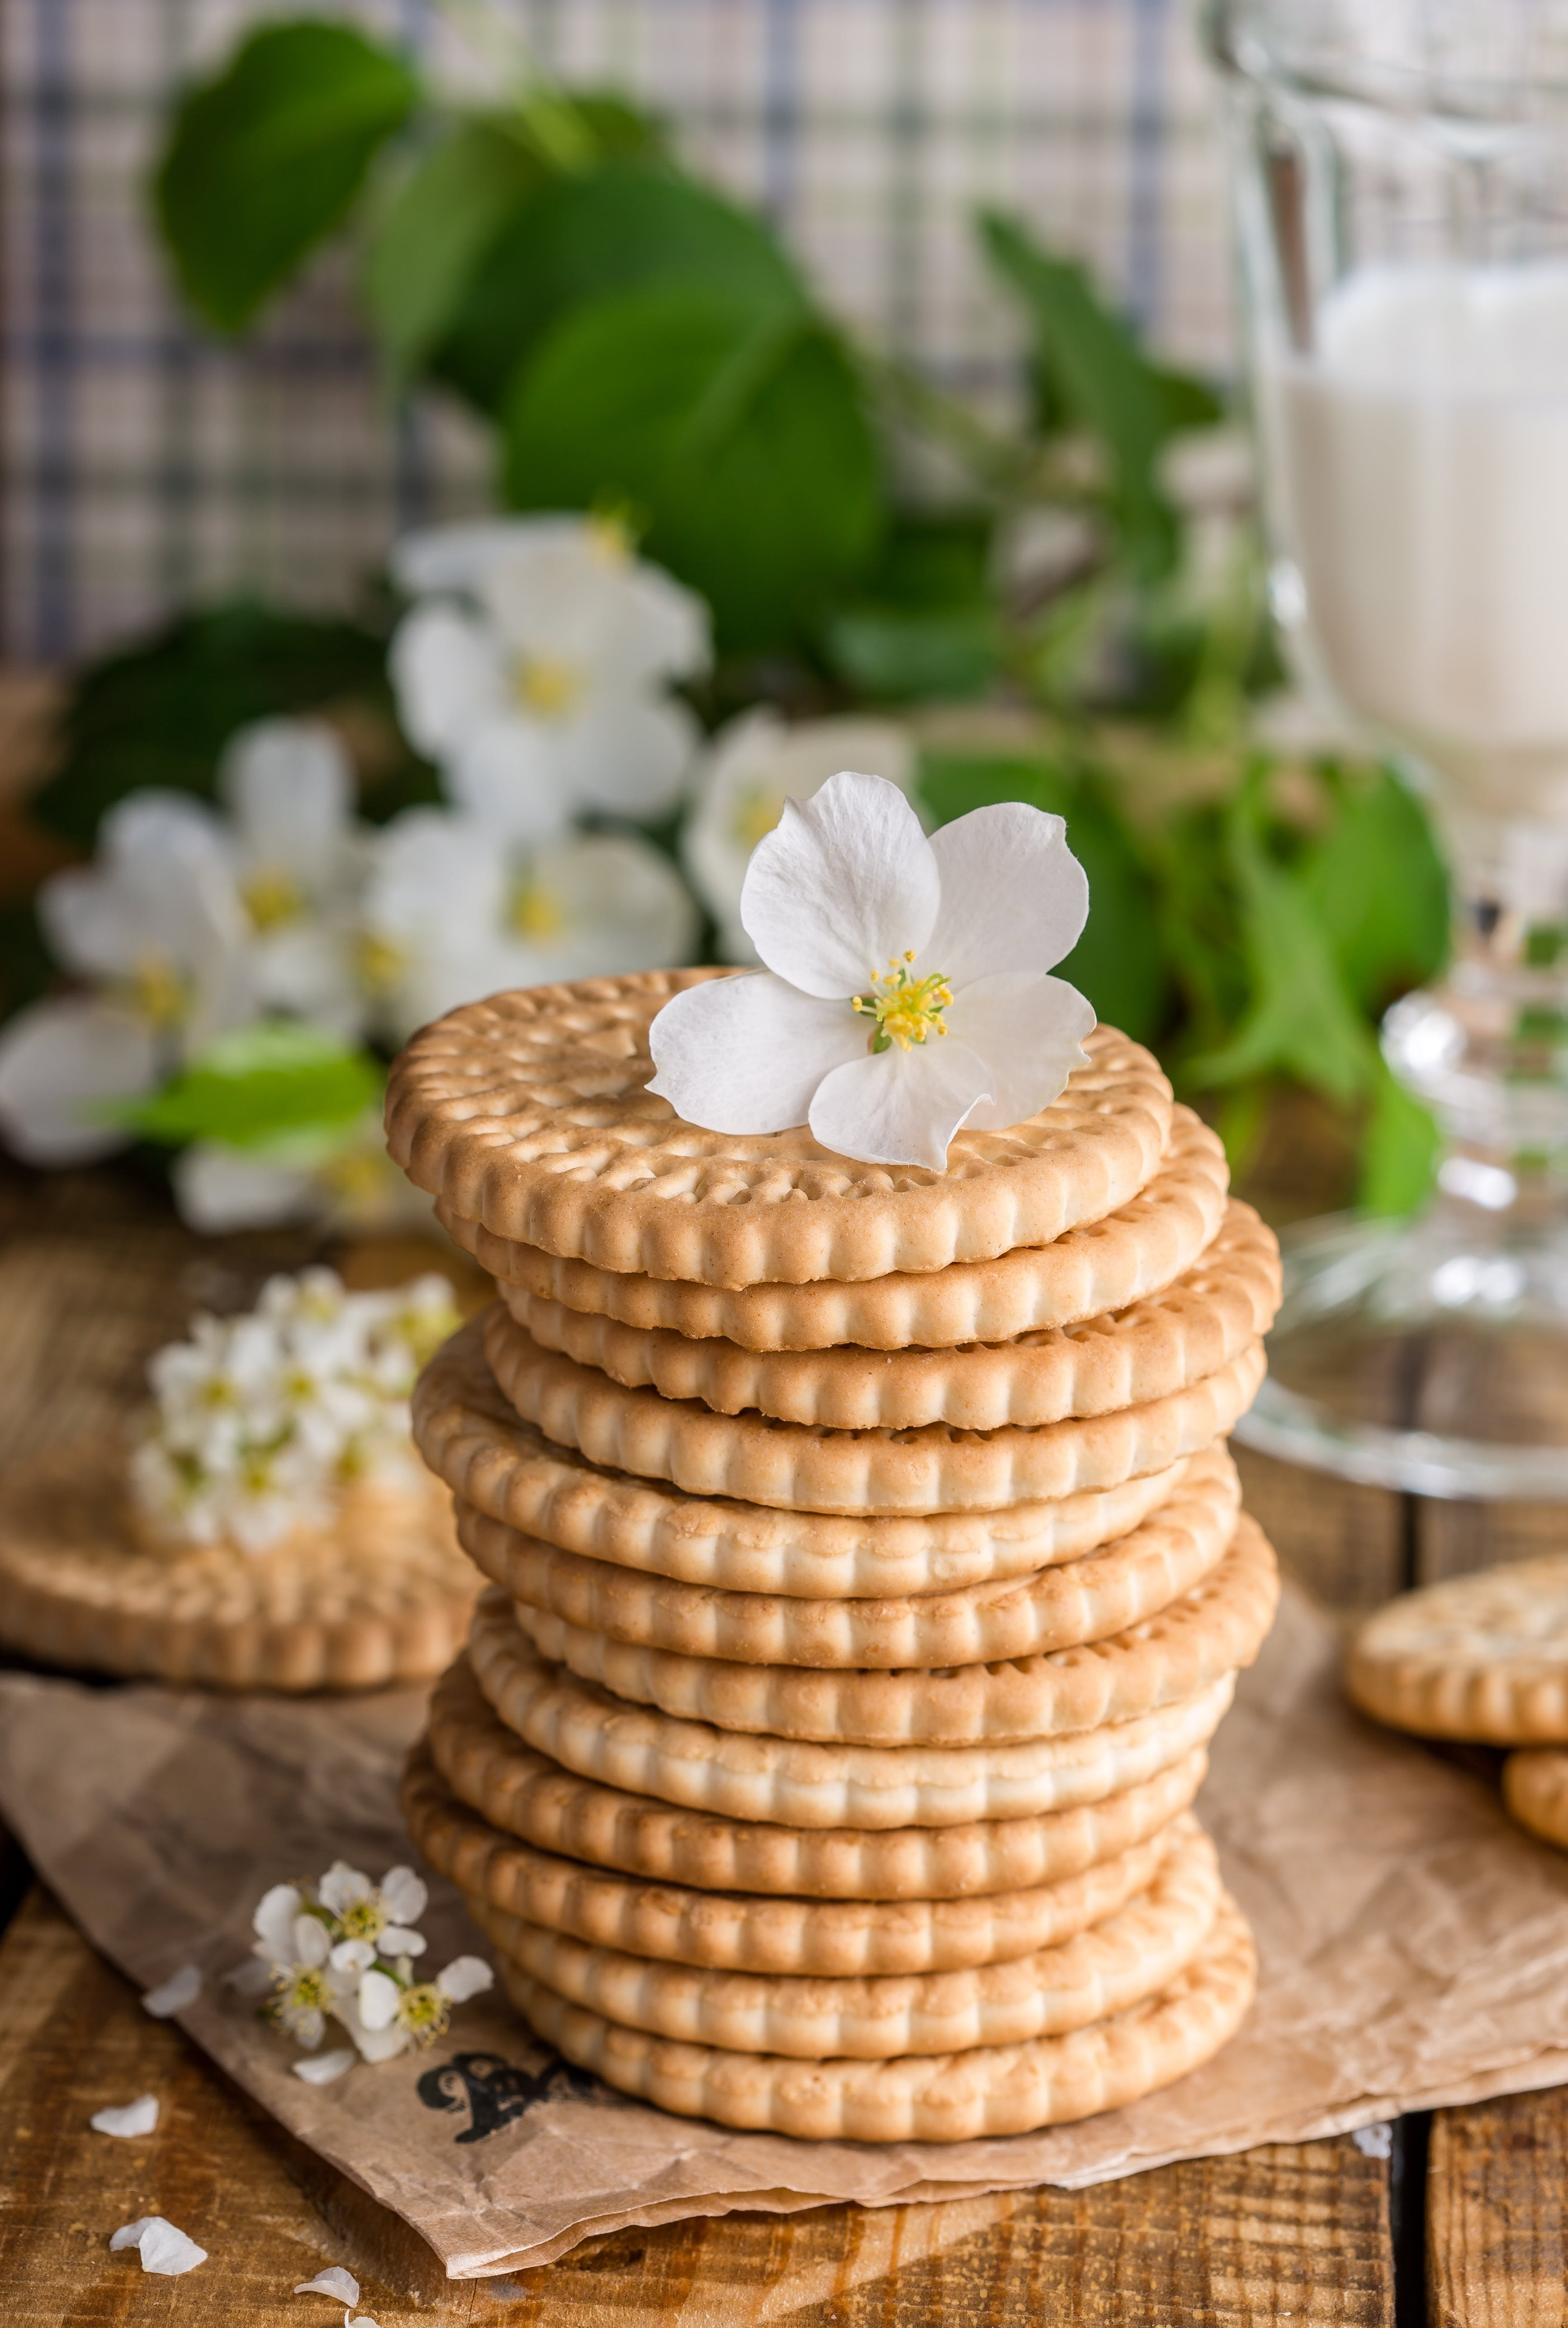 Pile of Biscuits With Flower on Top